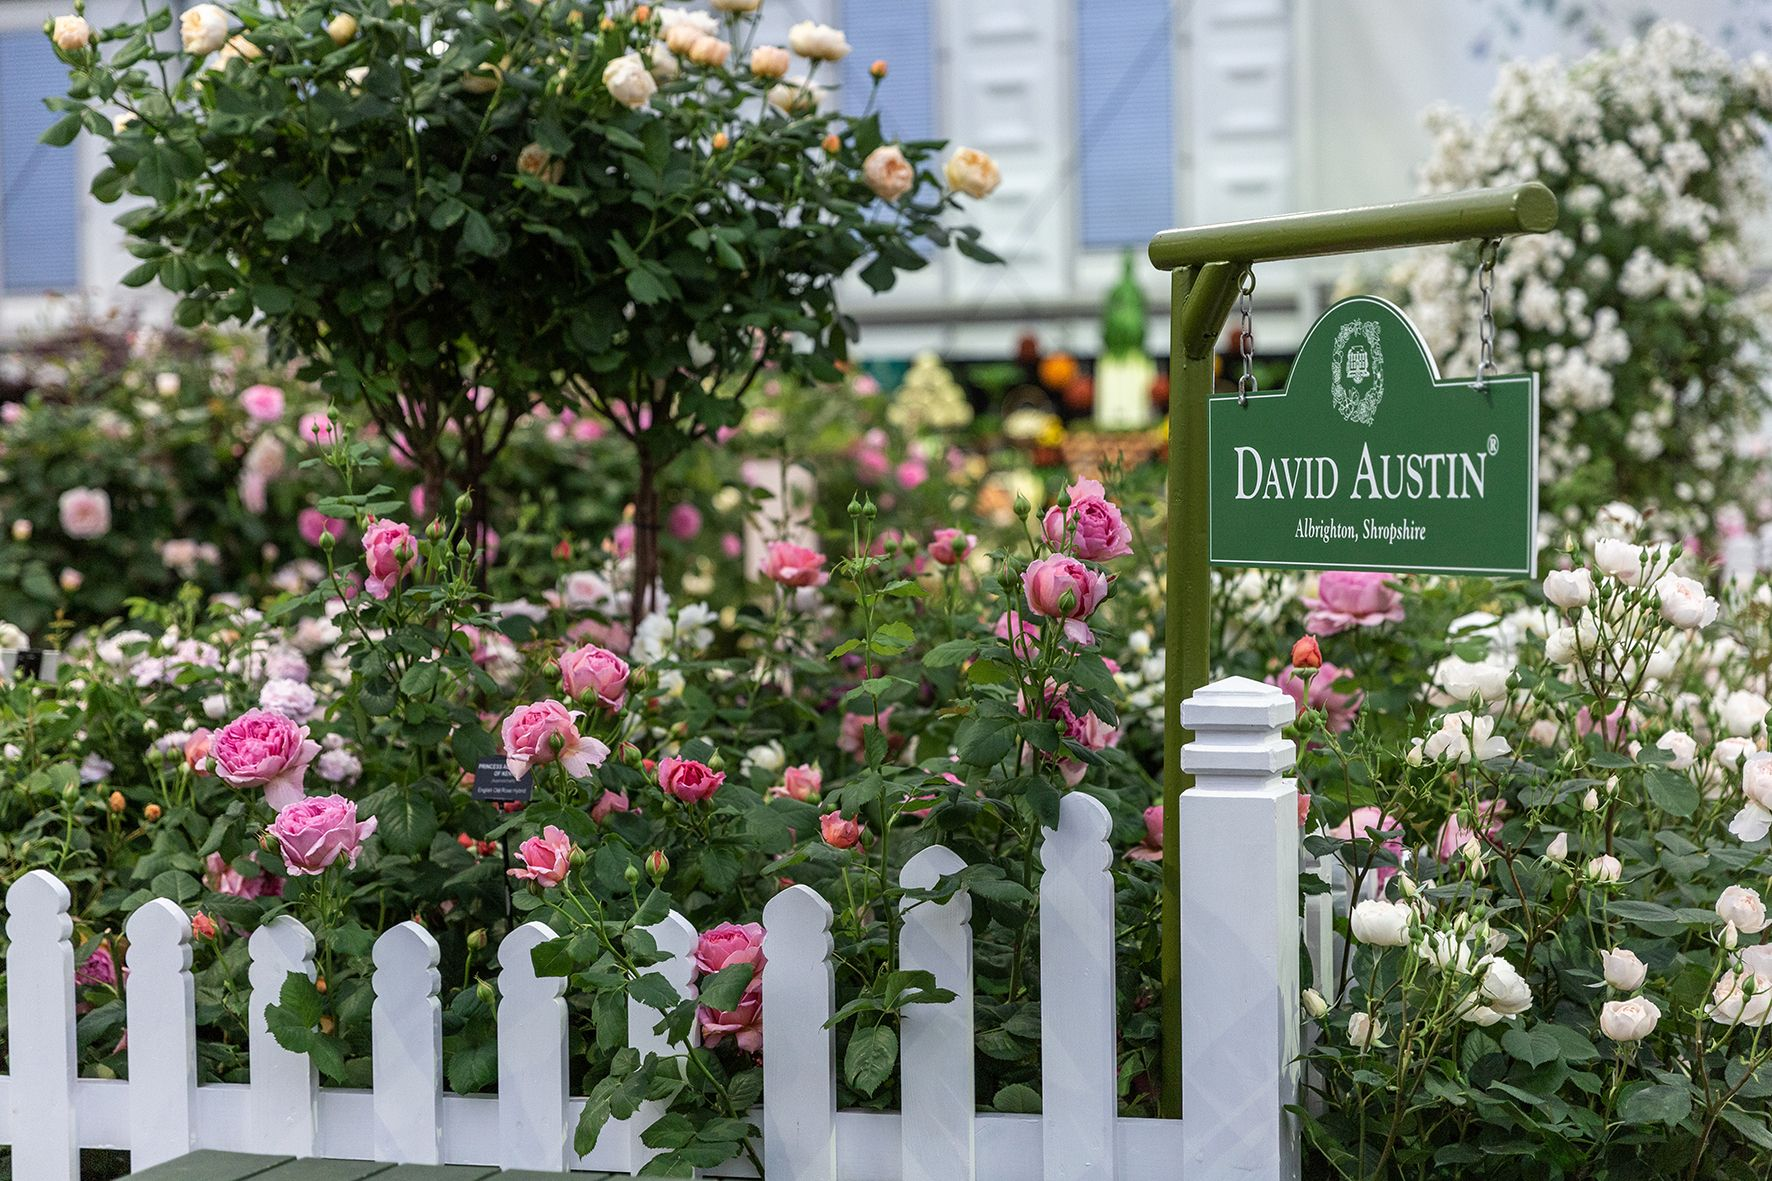 Chelsea Flower Show 2019: David Austin Roses win 25th Gold medal